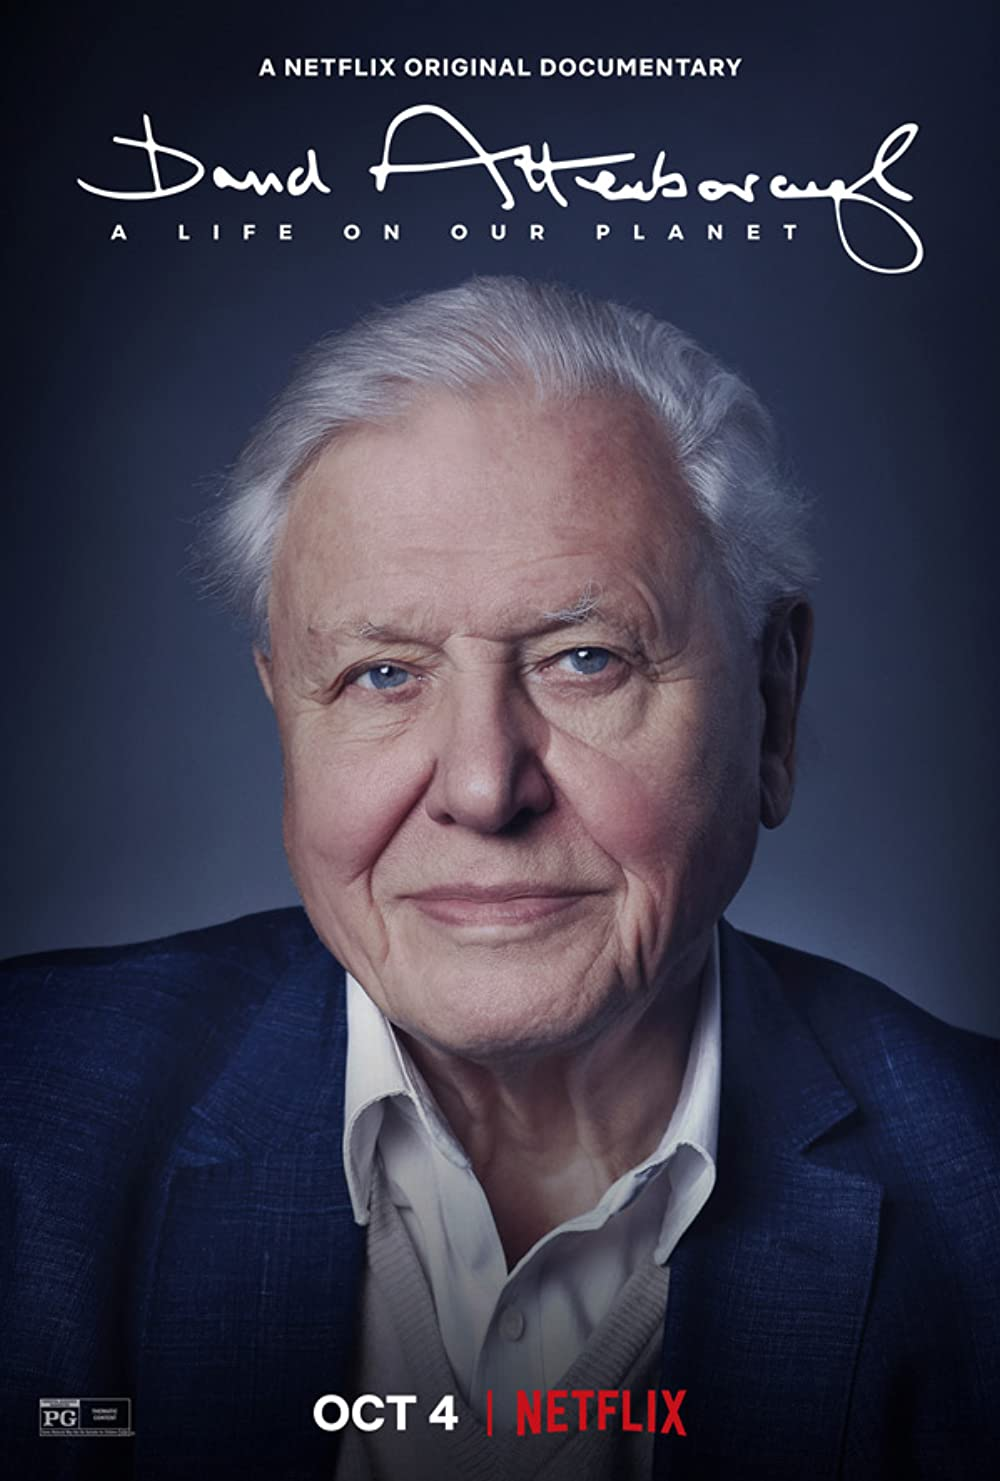 Watch David Attenborough: A Life on Our Planet Online